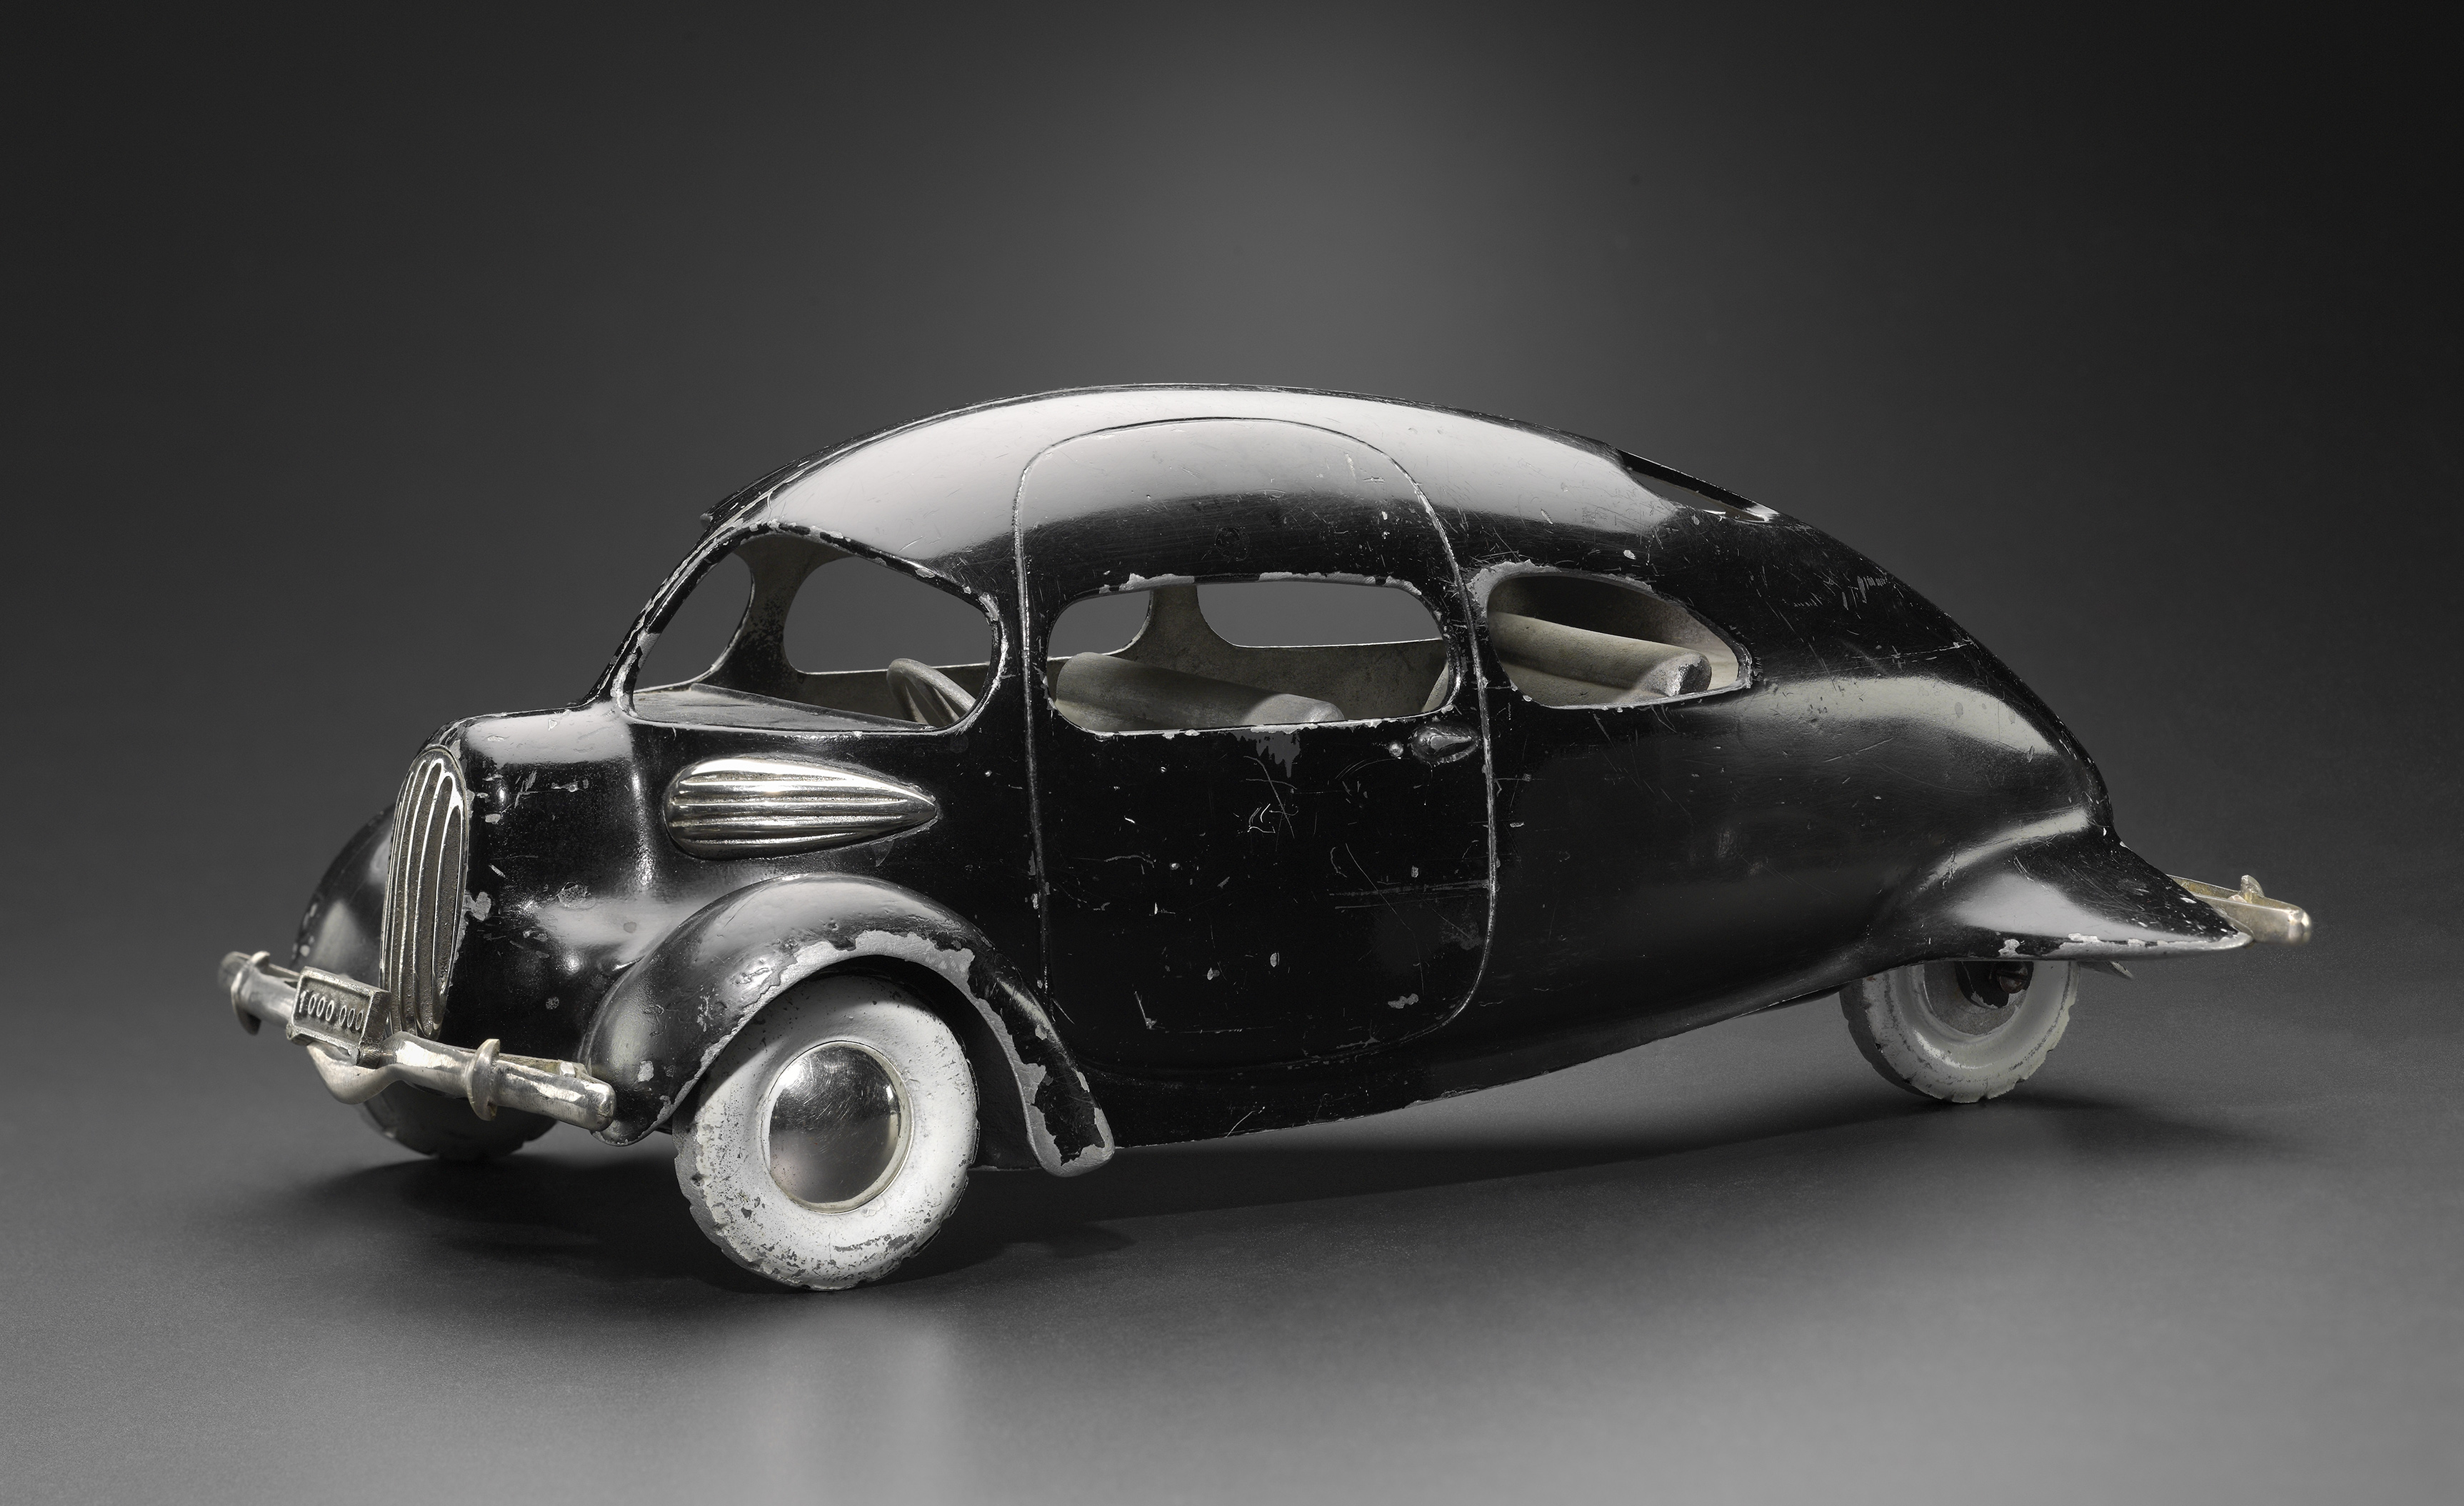 Airomobile prototype model, United States (Denver), Designed by Paul M. Lewis (American, died in 1990) and John Tjaarda (American, born in the Netherlands, 1897–1962), Manufactured by McPherson Foundry (1936), Painted cast aluminum, polished aluminum, Jean S. and Frederic A. Sharf Collection (Courtesy of the Museum of Fine Arts, Boston)